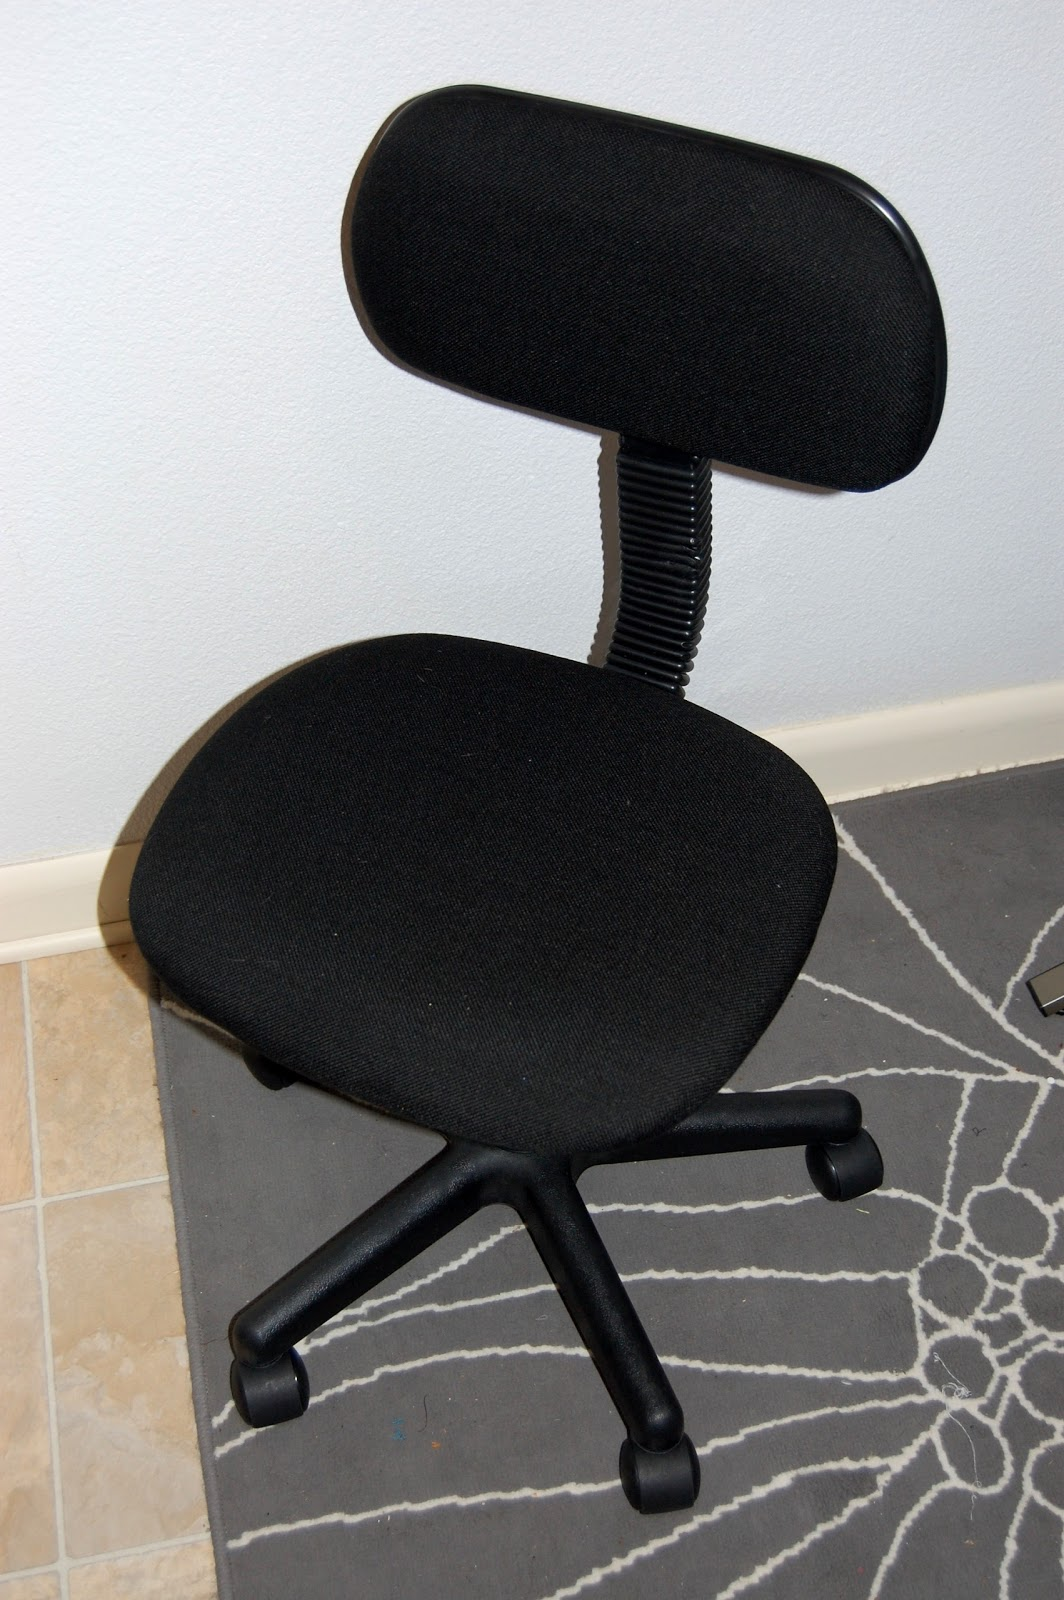 Reupholster Office Chair Paint It Pretty Reupholster A Boring Office Chair